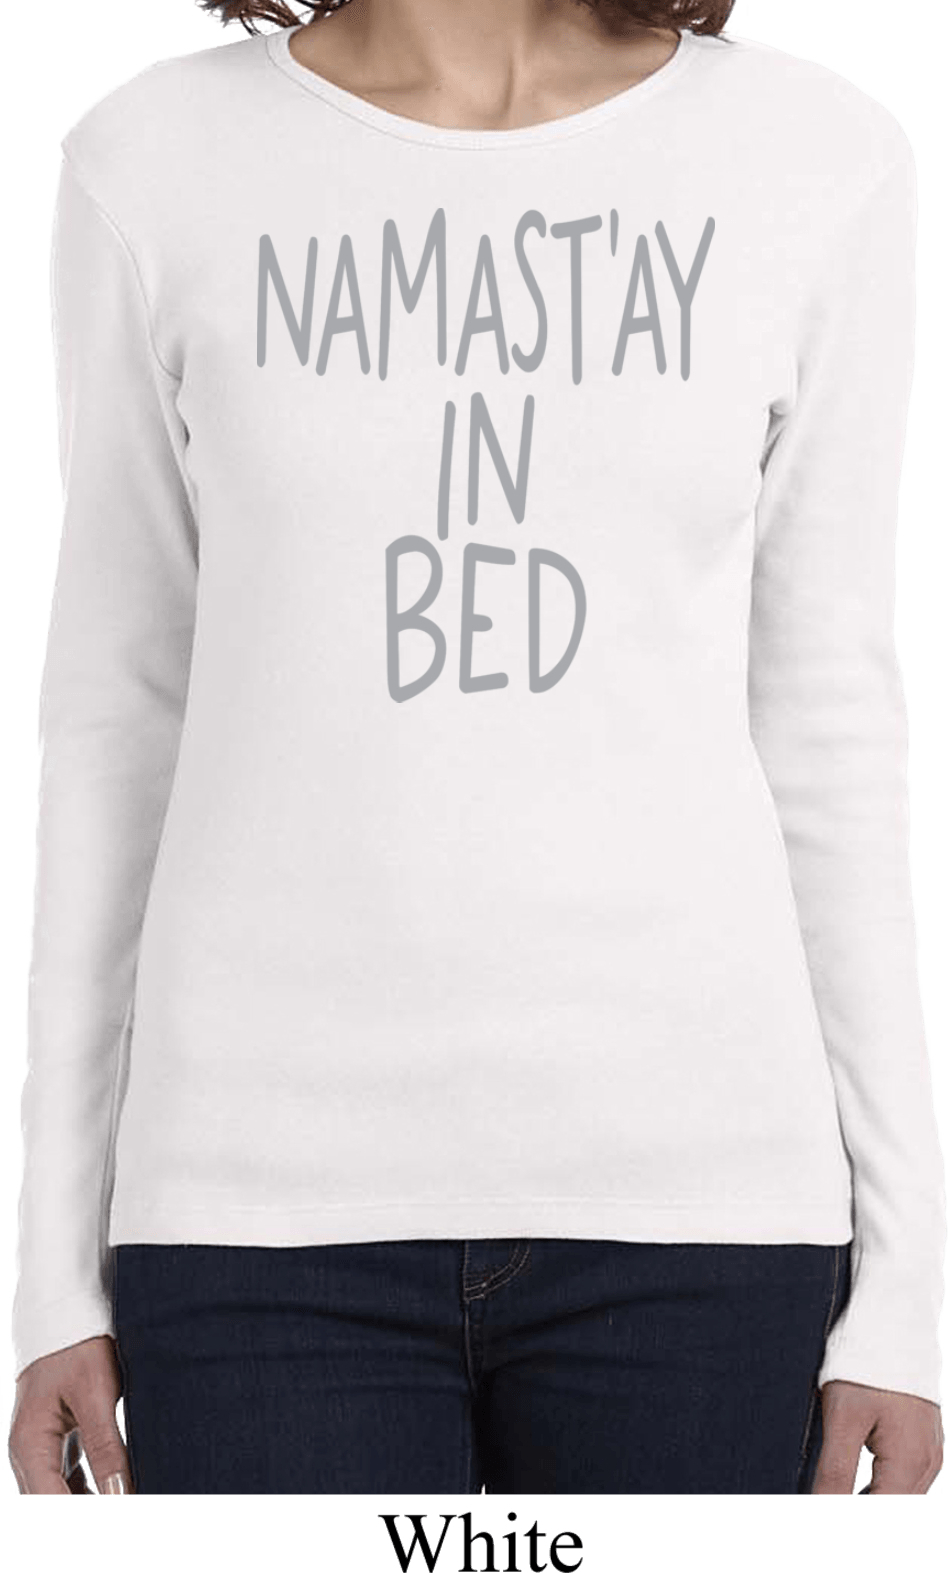 ladies yoga shirt namastay in bed long sleeve tee namastay in bed ladies yoga shirts. Black Bedroom Furniture Sets. Home Design Ideas